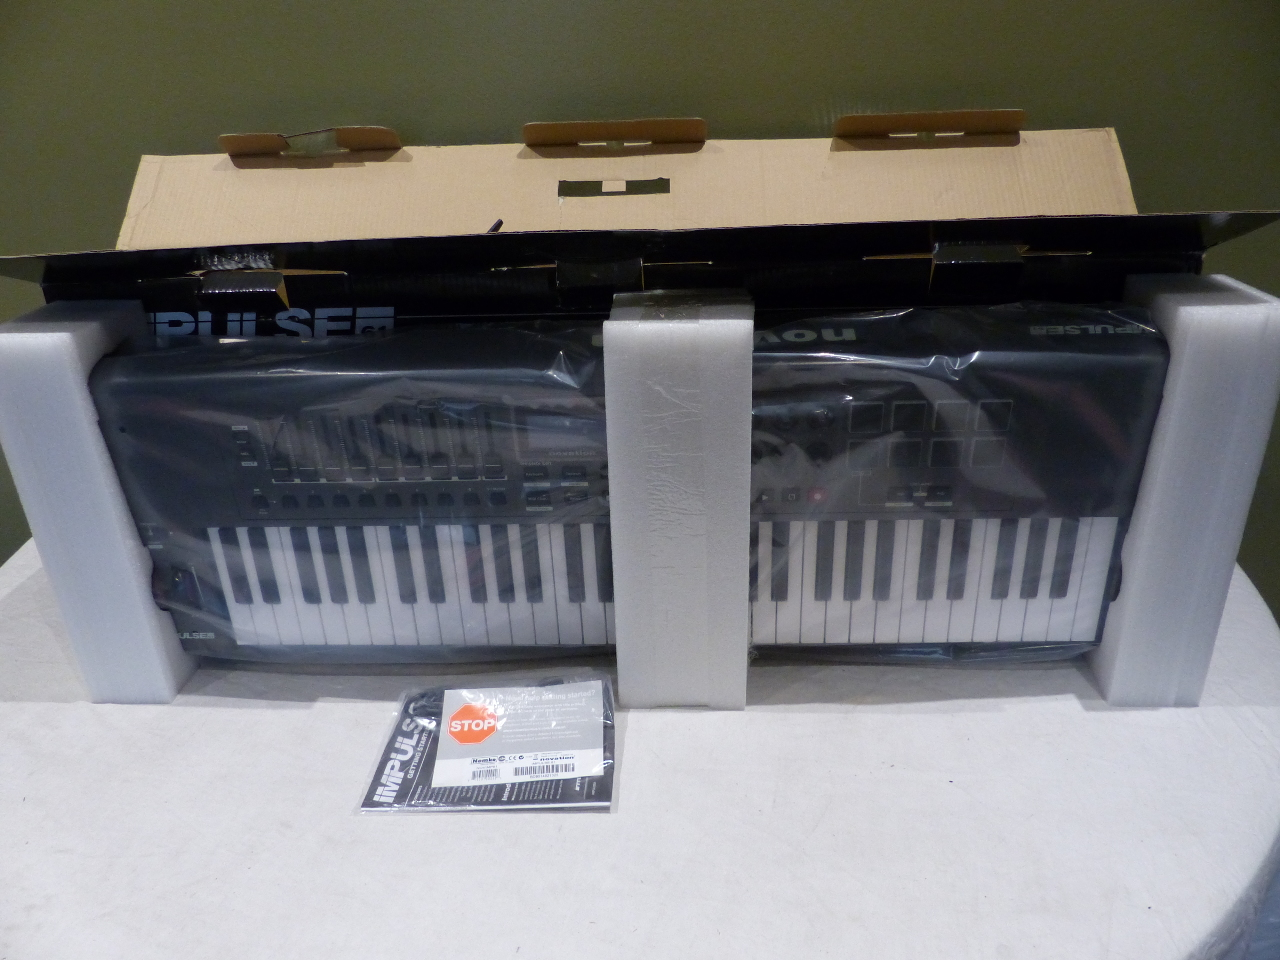 novation impulse 61 usb midi controller keyboard 61 keys novimp61 815301000426 ebay. Black Bedroom Furniture Sets. Home Design Ideas